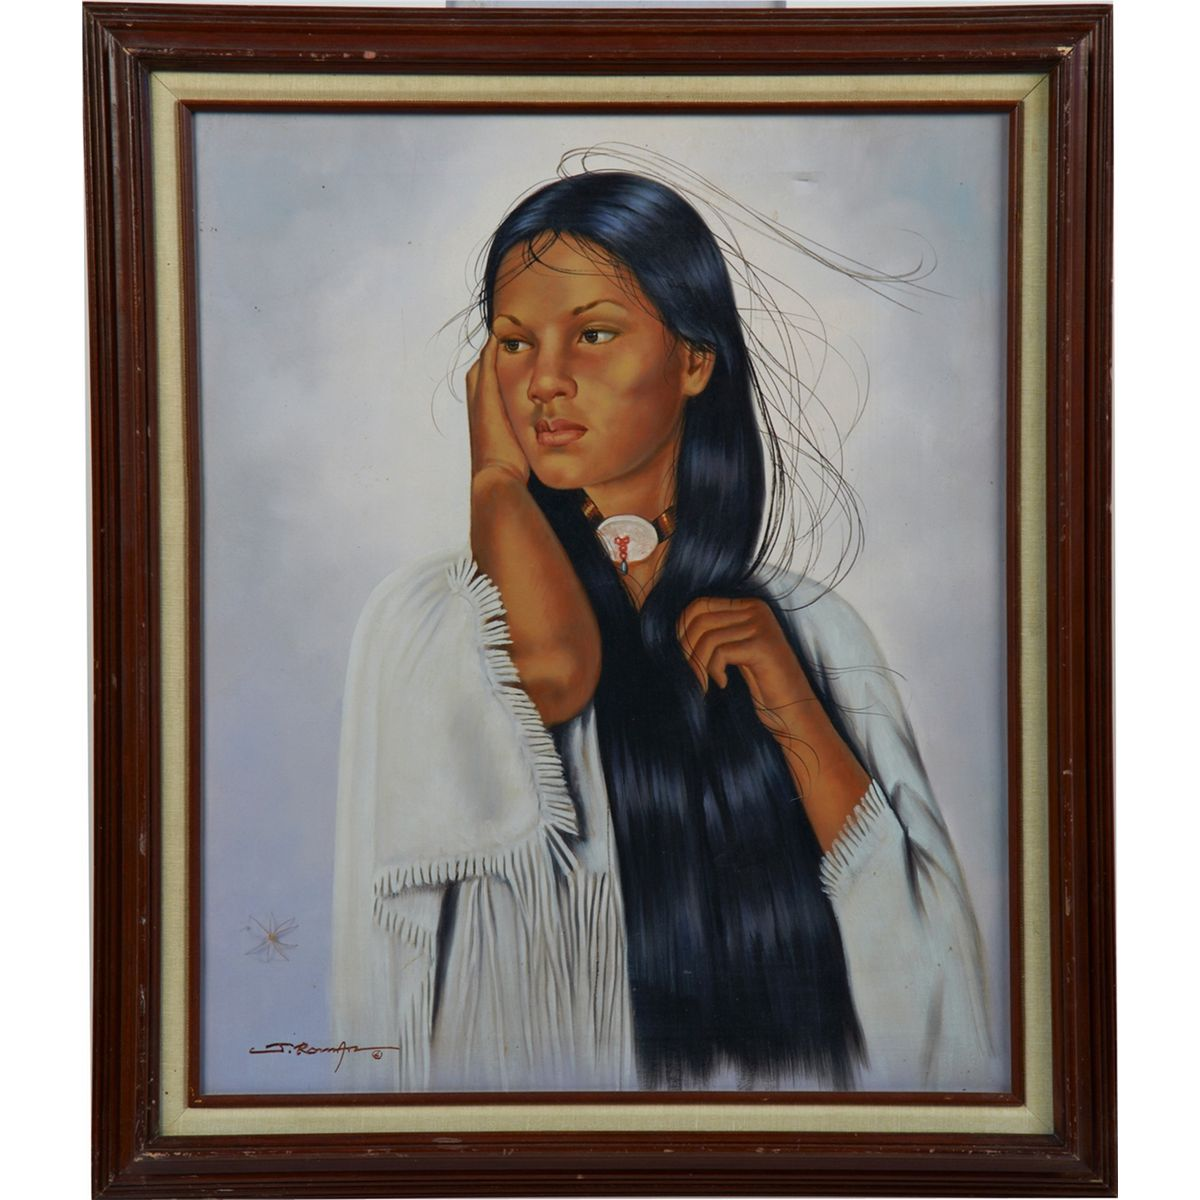 Authoritative Very young native american girl think